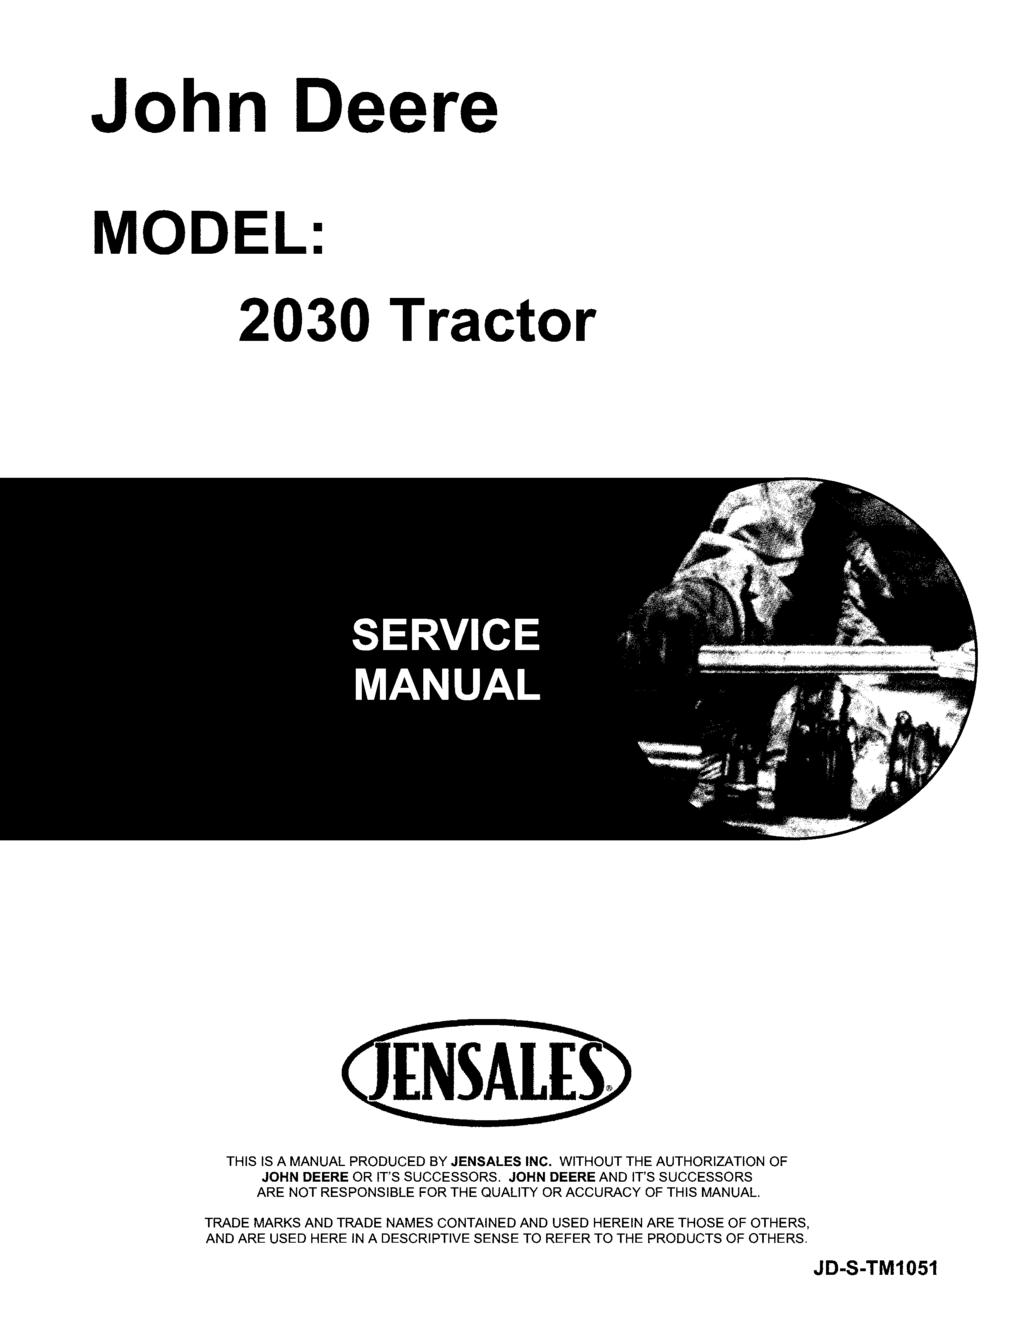 John Deere MODEL: 2030 Tractor THIS IS A MANUAL PRODUCED BY JENSALES INC. WITHOUT THE AUTHORIZATION OF JOHN DEERE OR IT'S SUCCESSORS.